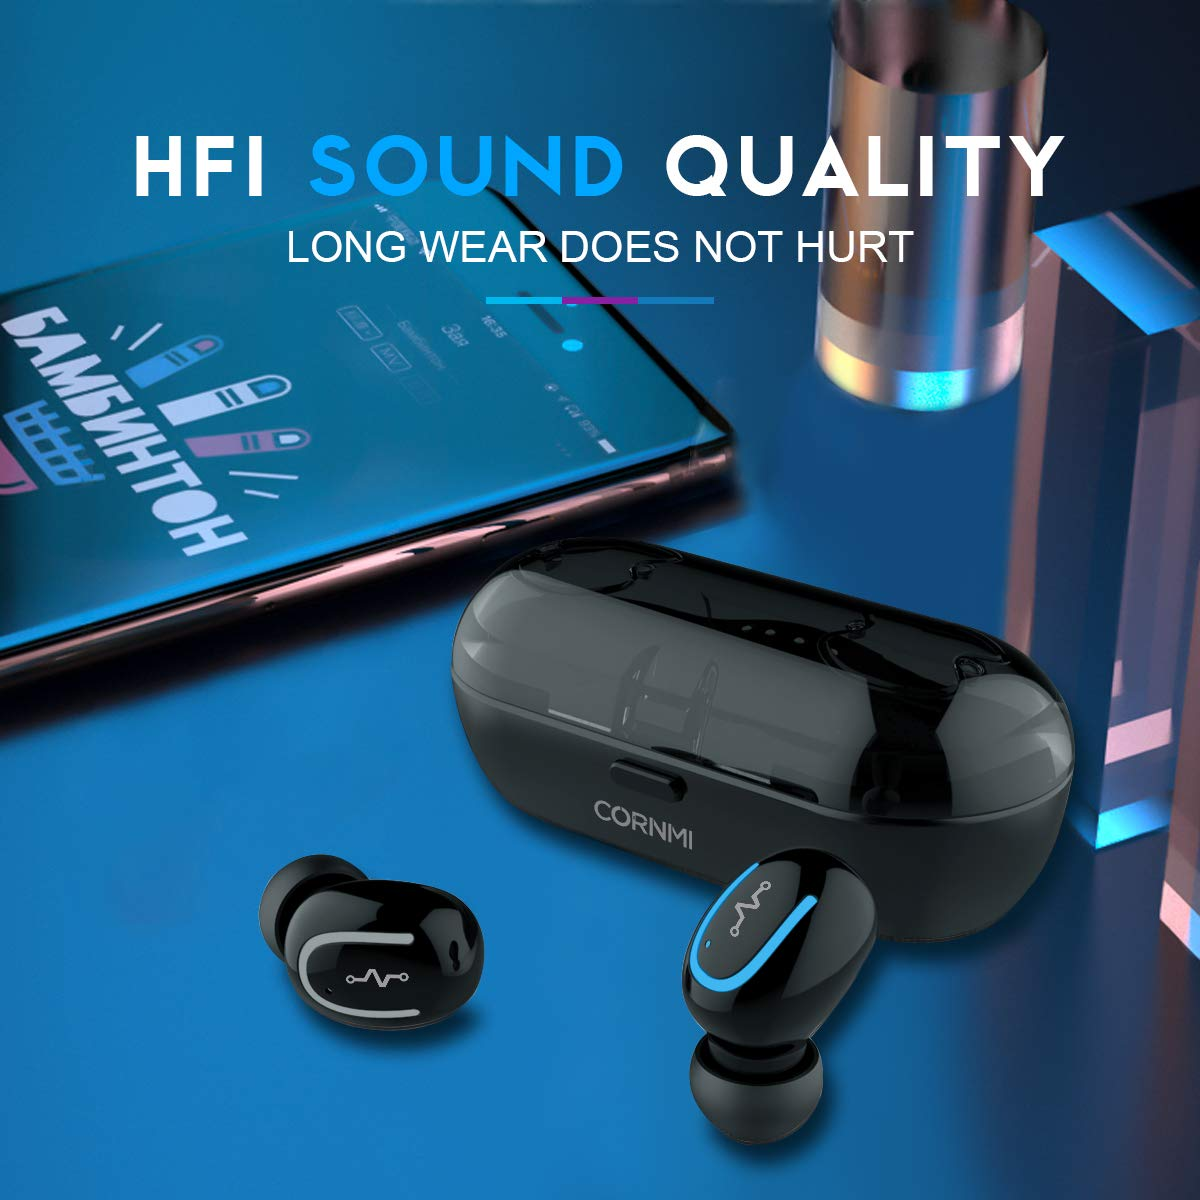 True Wireless Earbuds,Wireless Headphones,Stereo Bluetooth 5.0 Earphones for Running,Mini Bluetooth Earbuds with Microphone, Tws Sports Headsets for iPhone Android with Charging Case,Tech Gift for Men